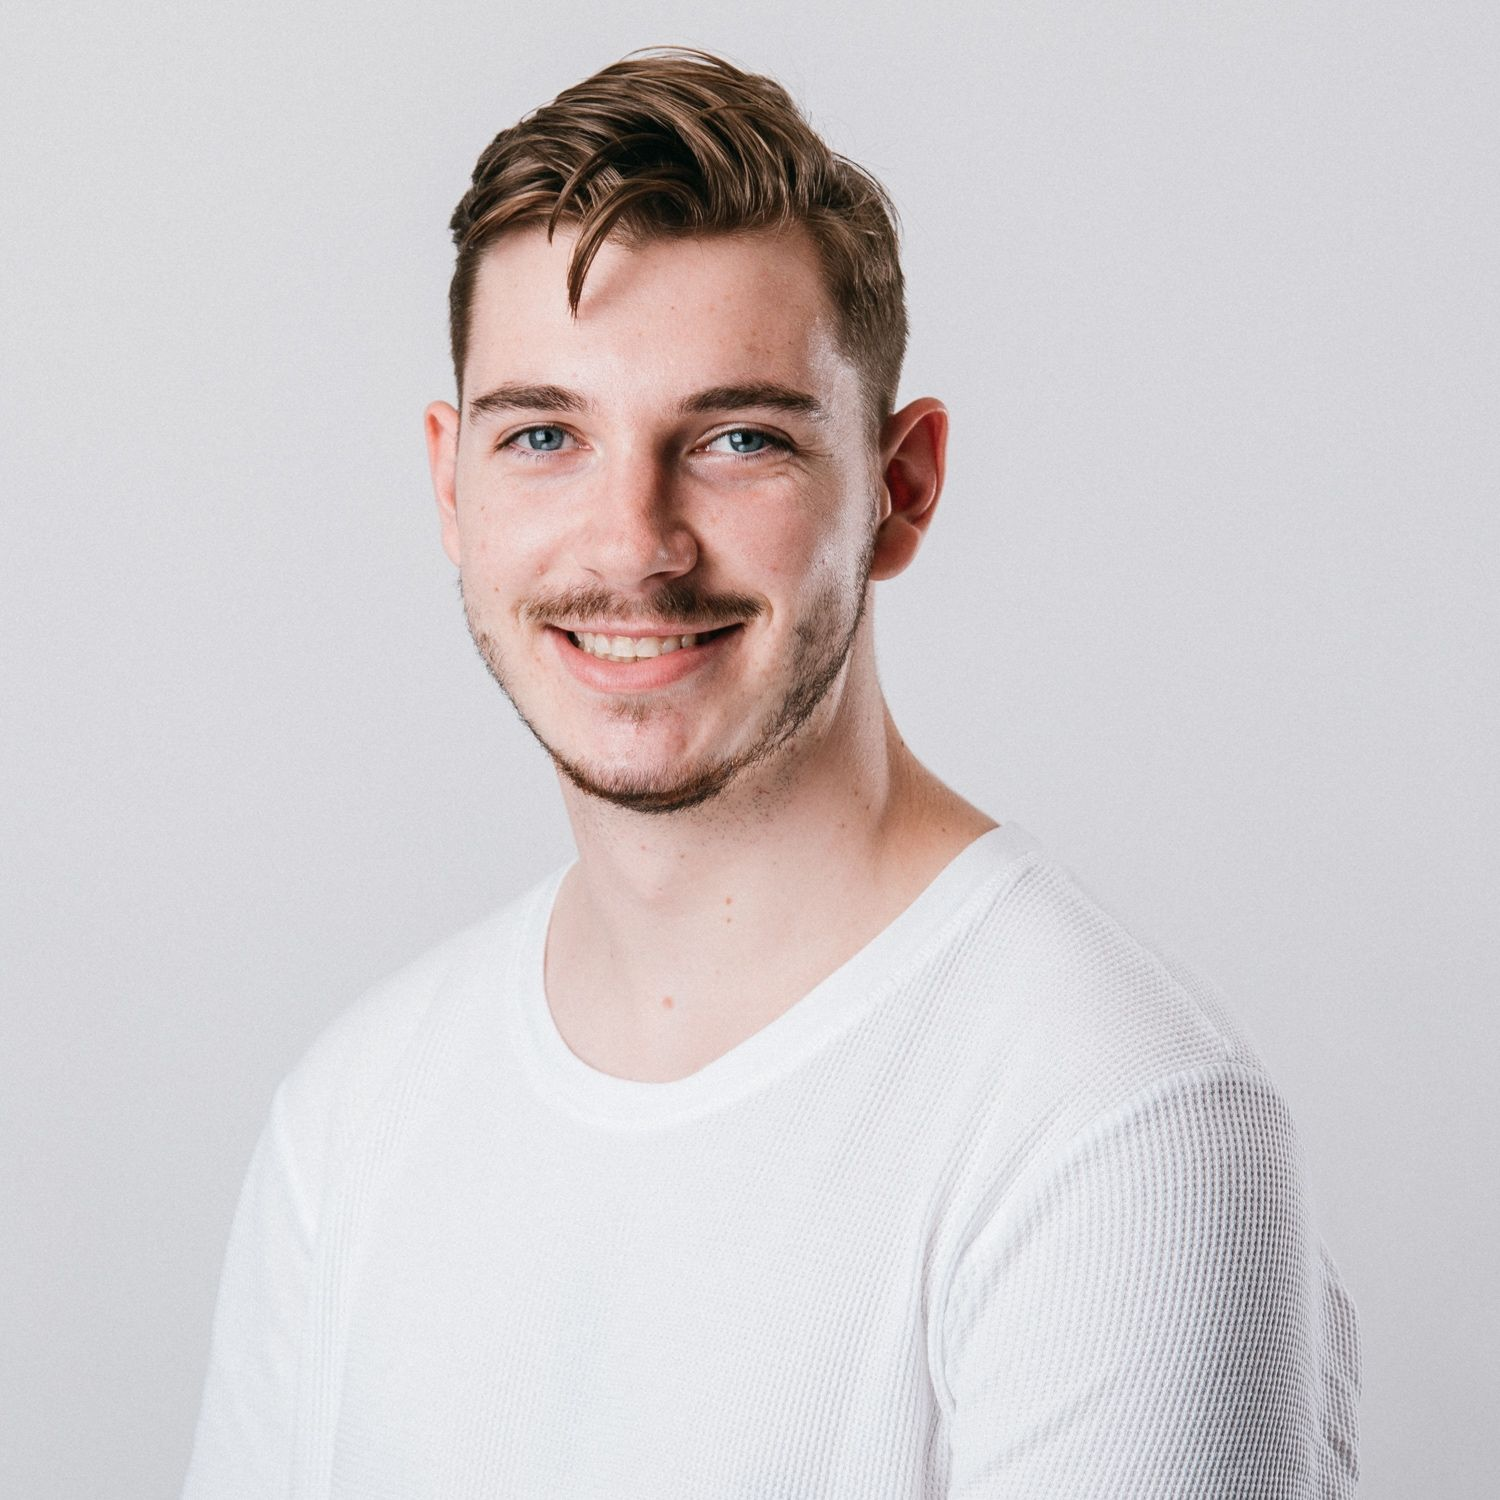 Gaël Thomas Hacker Noon profile picture